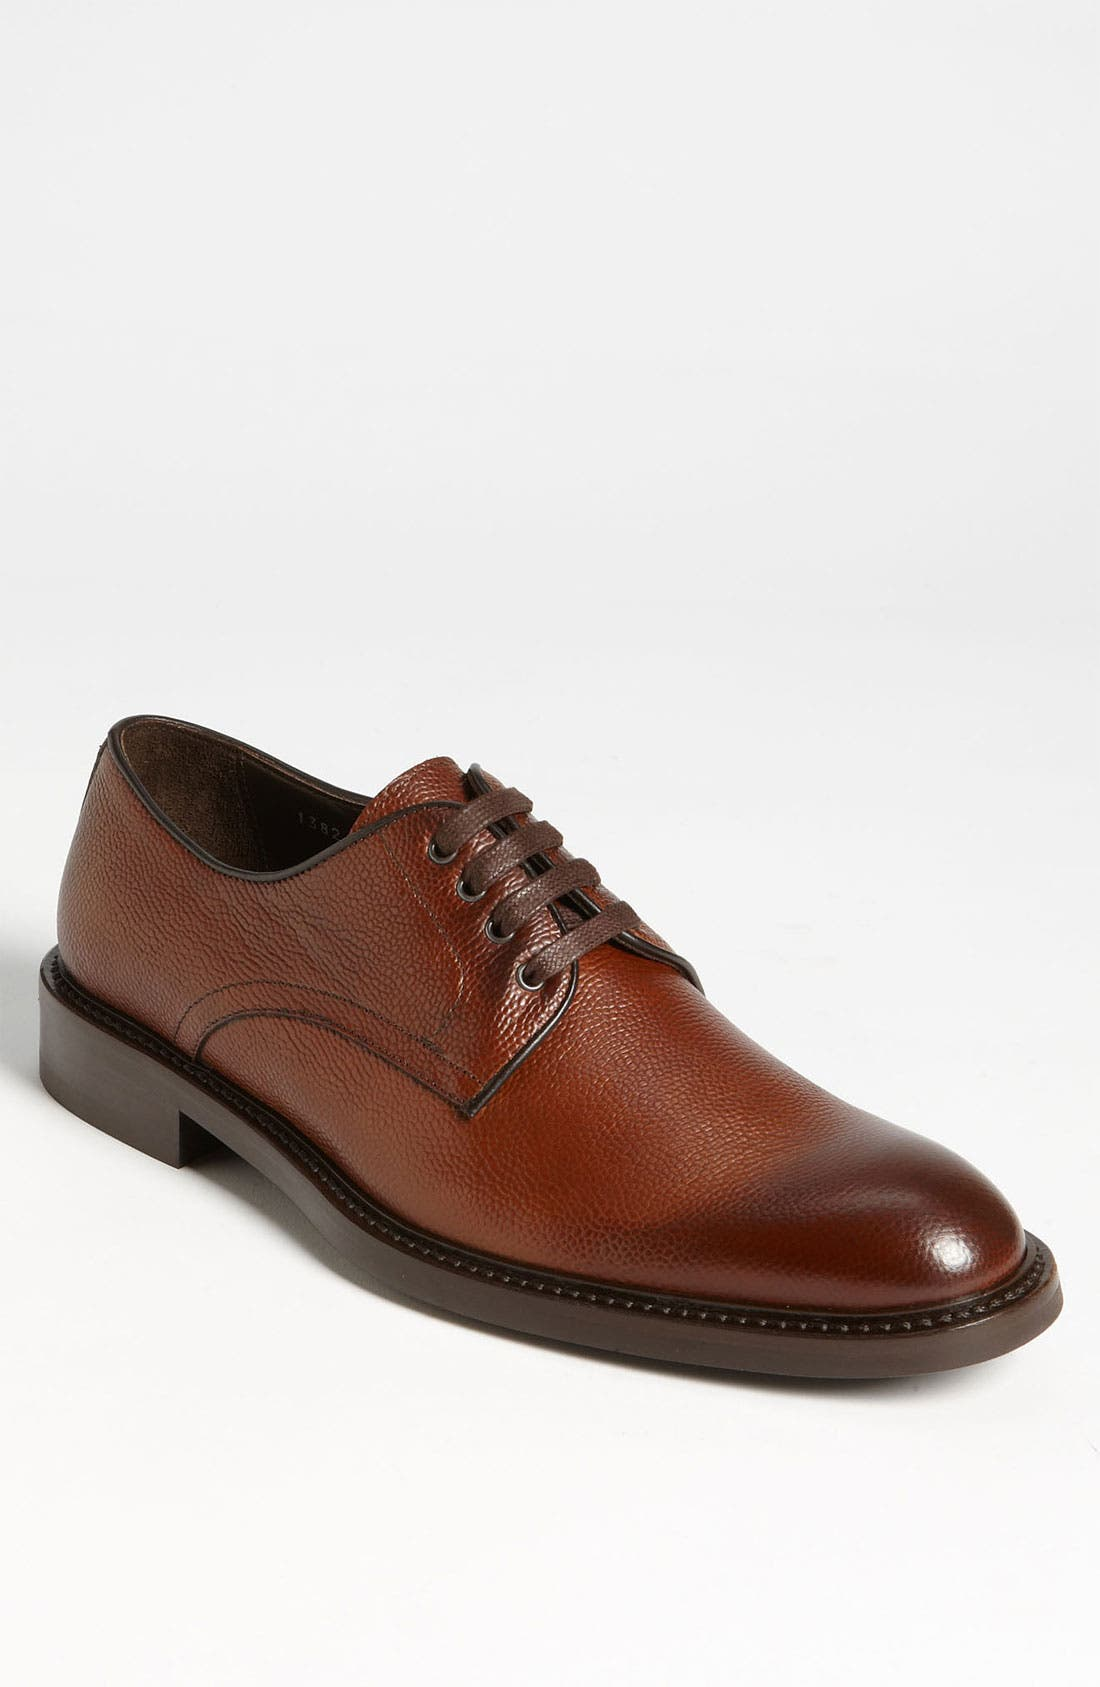 Alternate Image 1 Selected - To Boot New York 'Clark' Plain Toe Derby